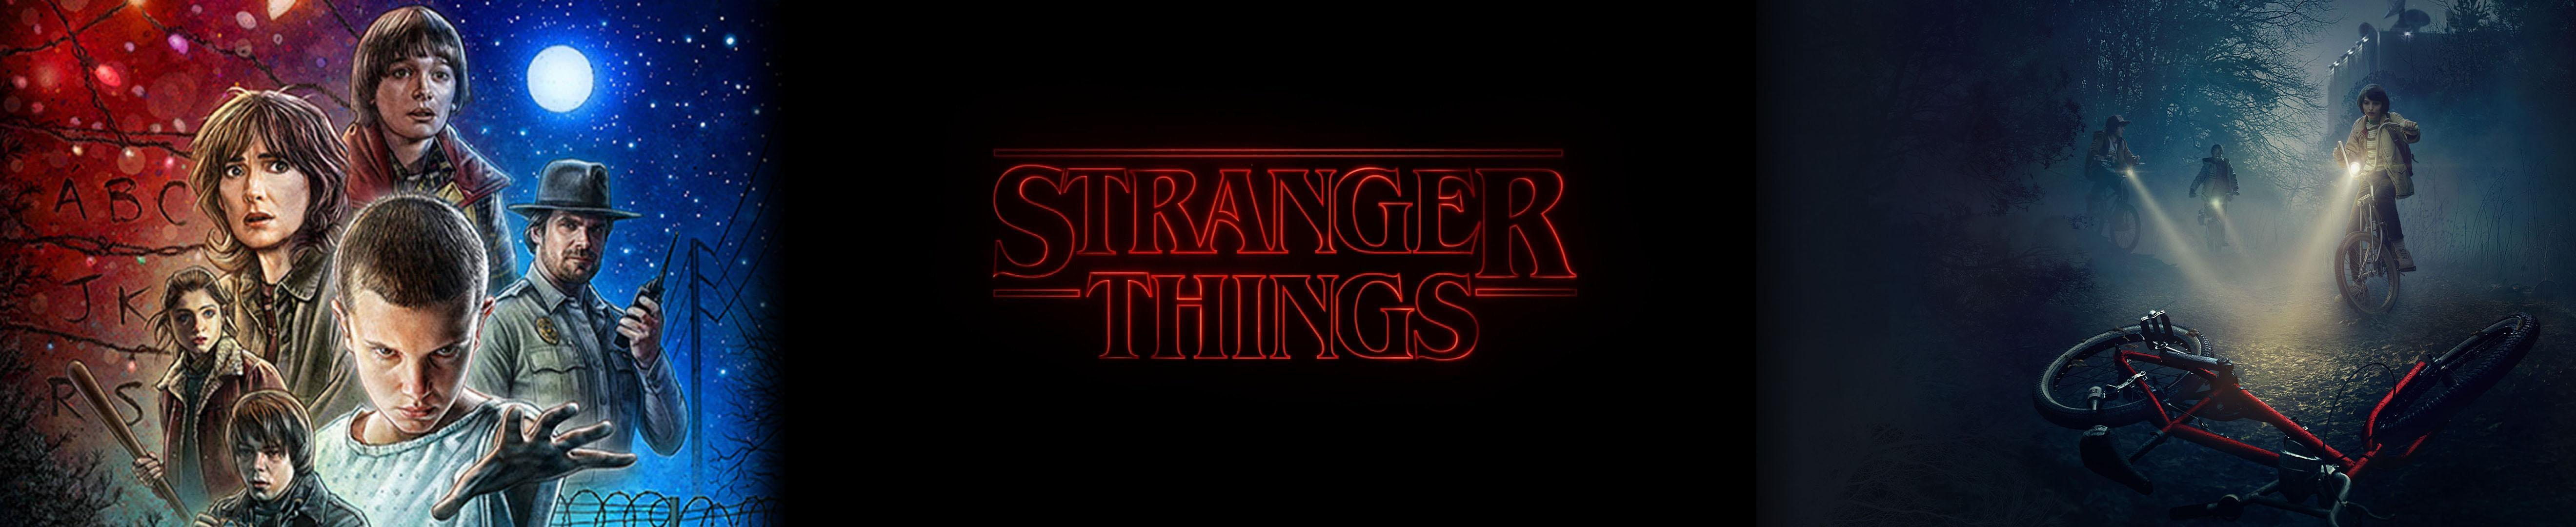 Stranger Things Wallpapers for Triple Monitors : StrangerThings